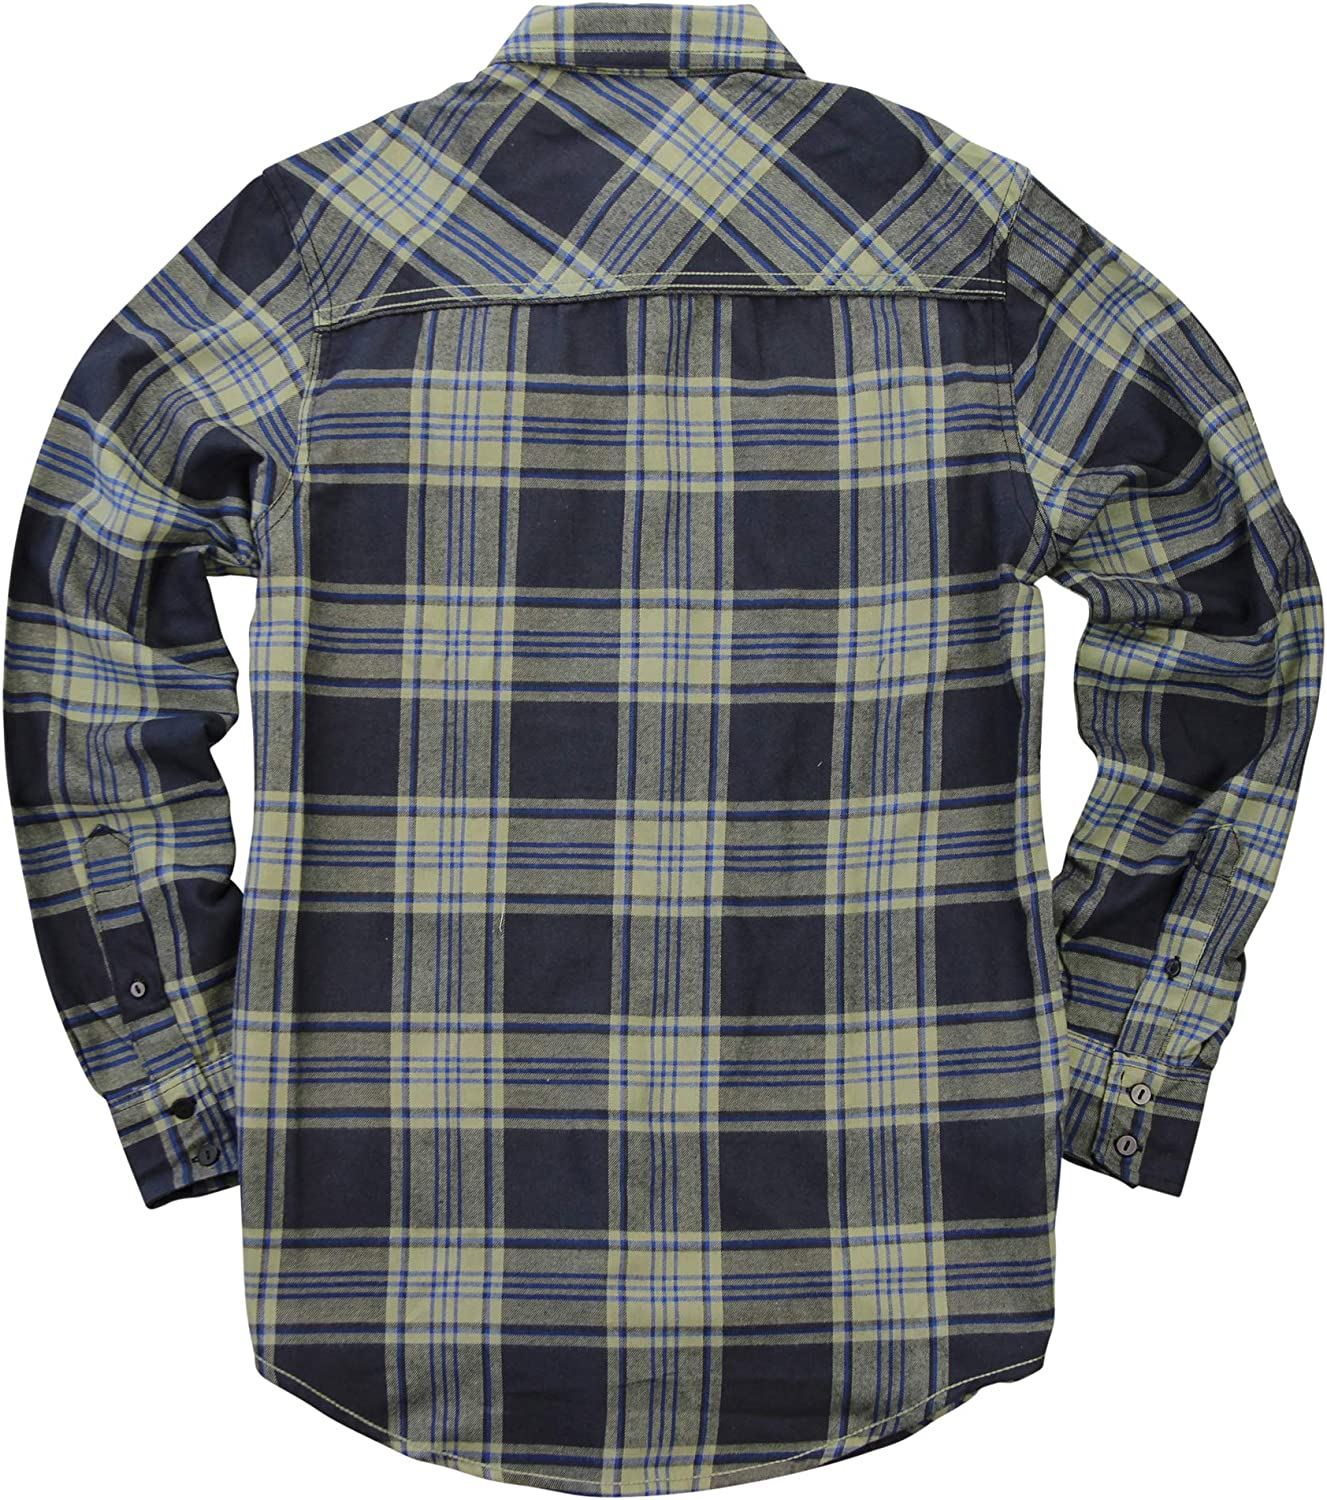 Mstyle Mens Cotton Long Sleeve Regular Fit Button Up Plaid Flannel Checkered Shirt